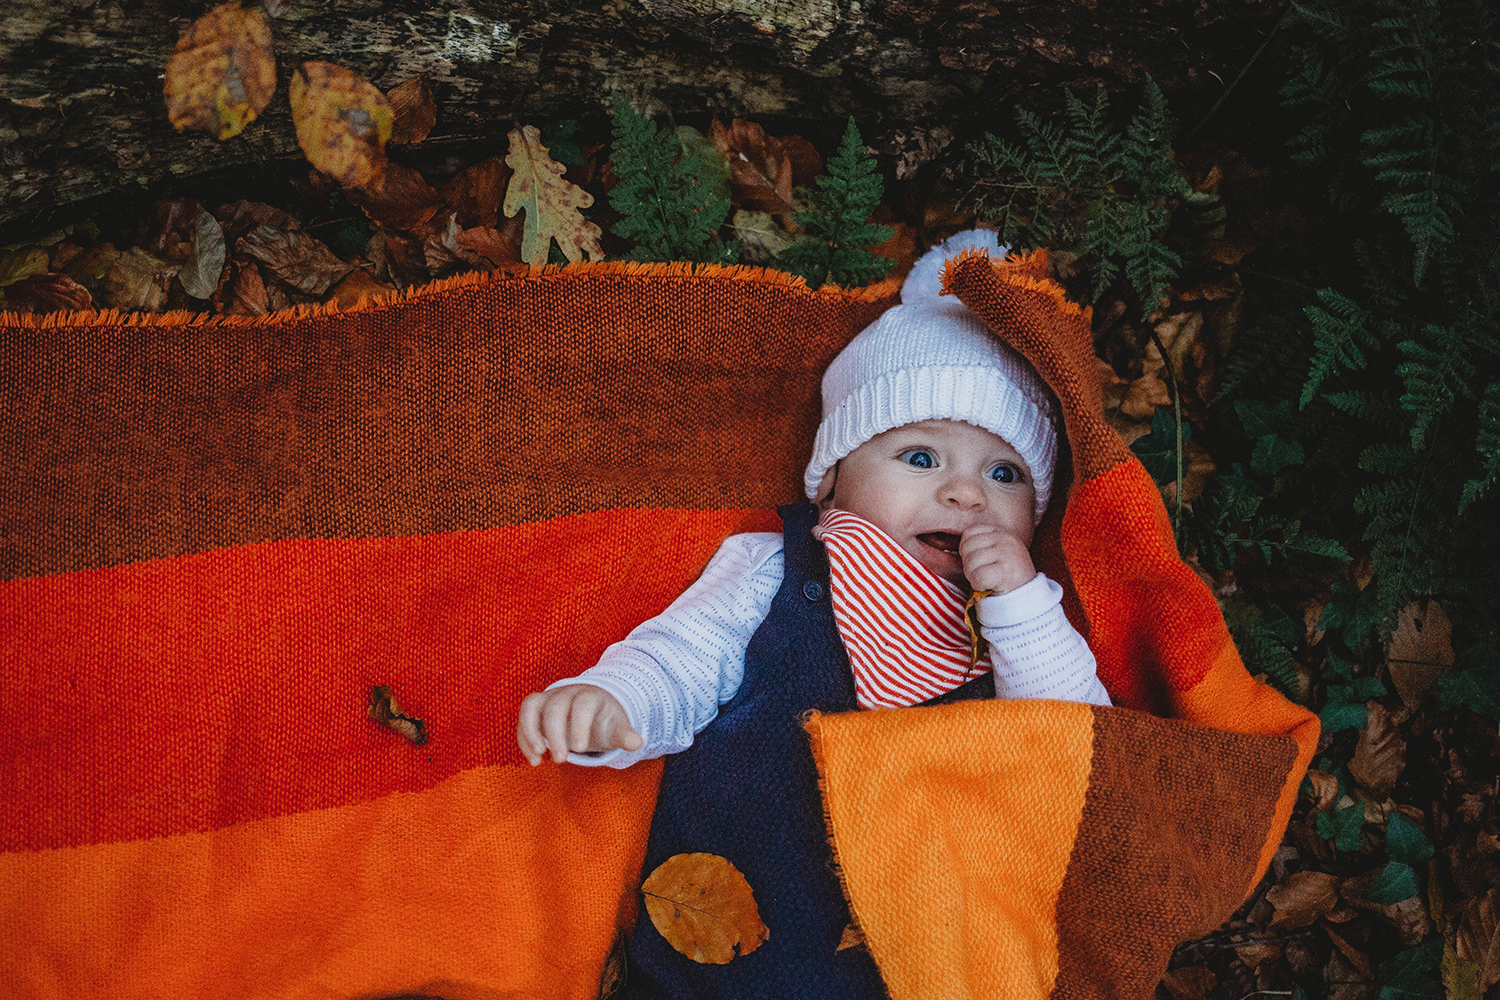 Outdoor photography of a baby in an orange blanket in Penllergar Woods in Swansea